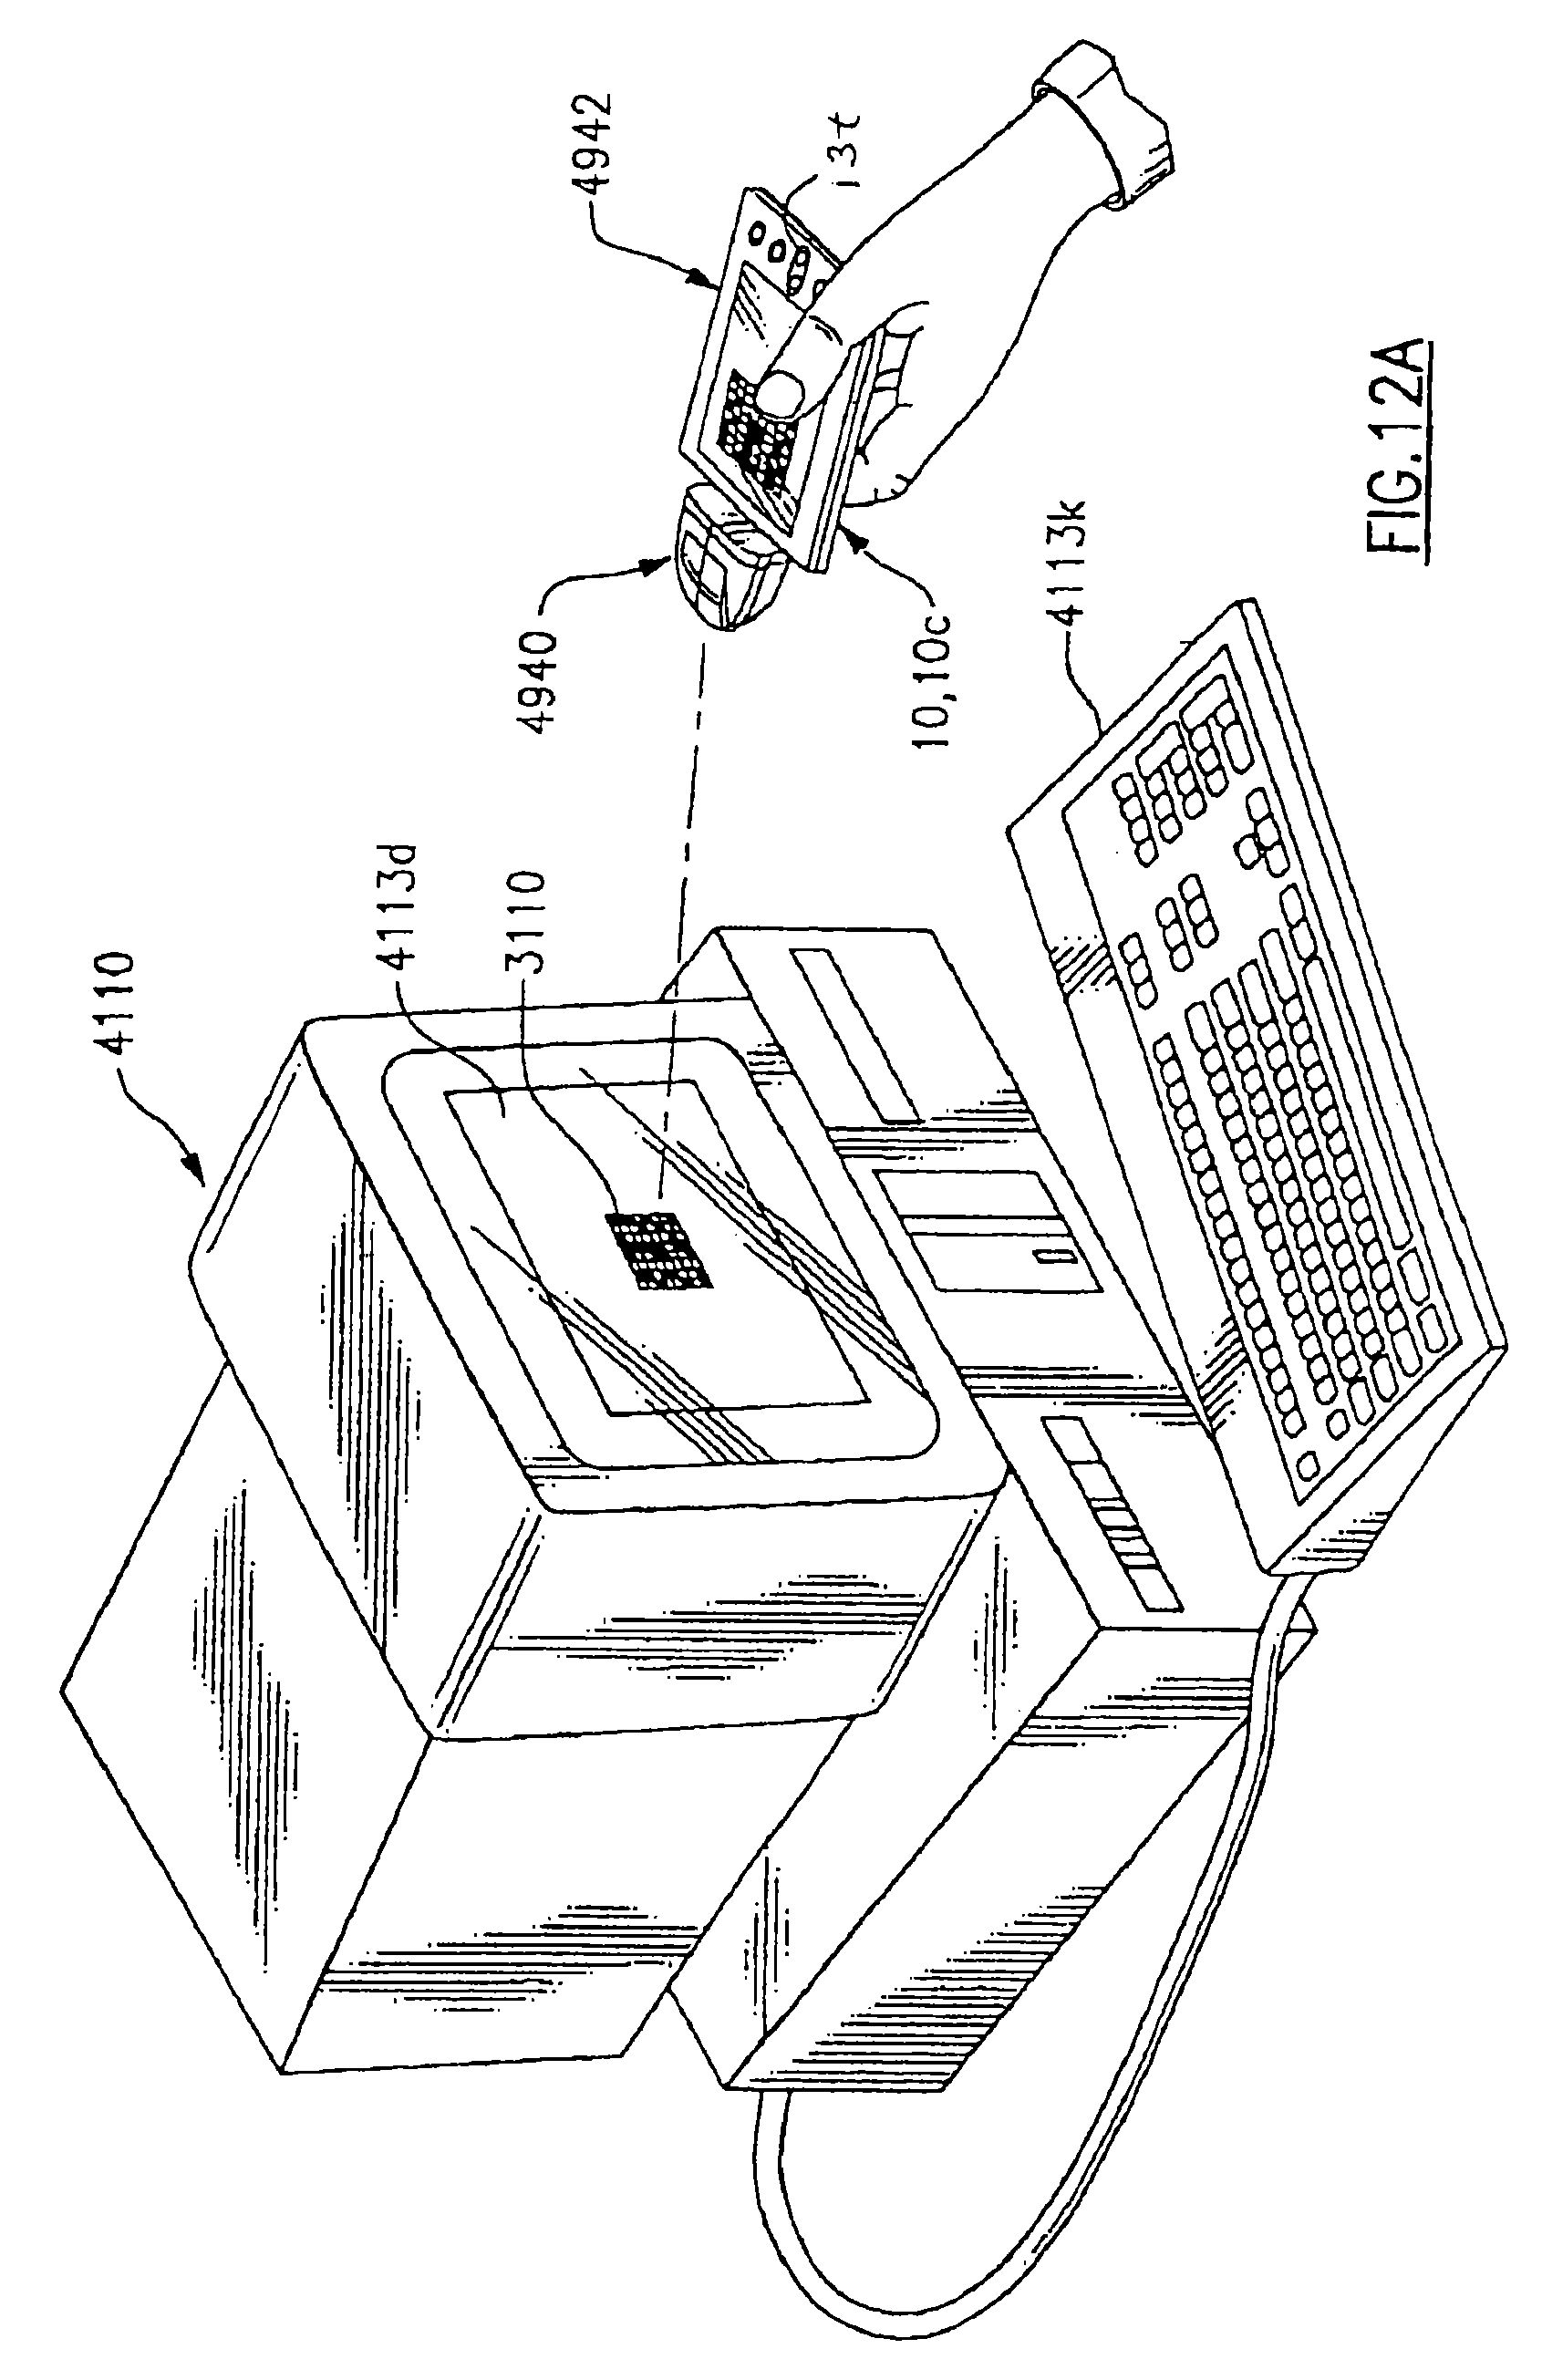 Patent Us 8985457 B2 Psc0 Laptop Toshiba Wiring Diagram 0 Petitions